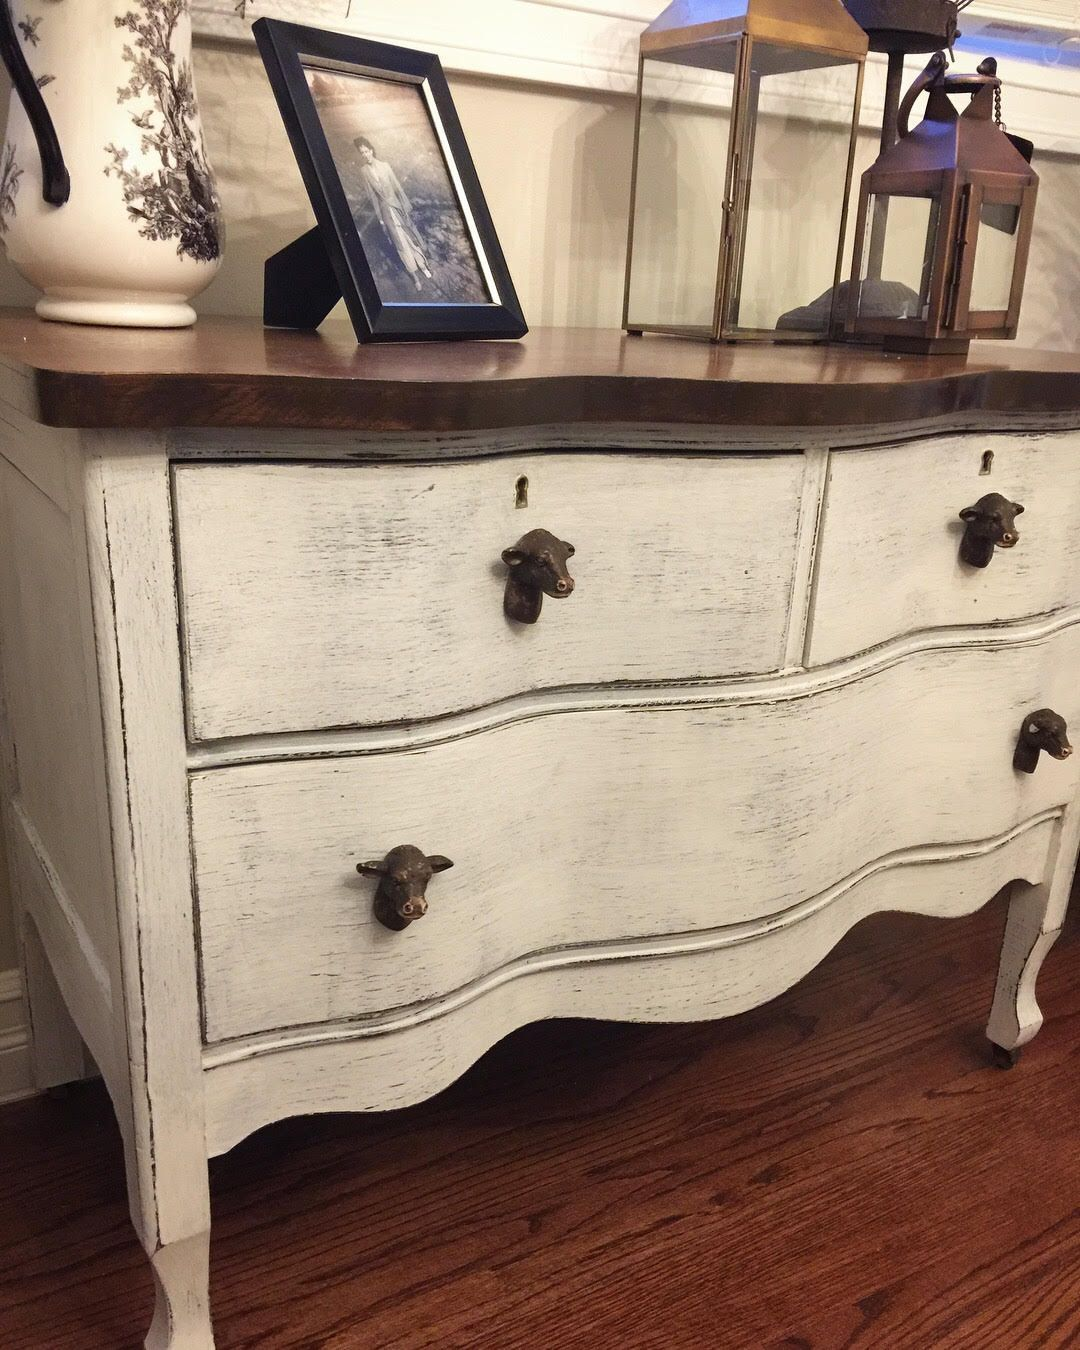 Shabby Chic / Farmhouse style dresser with adorable cow